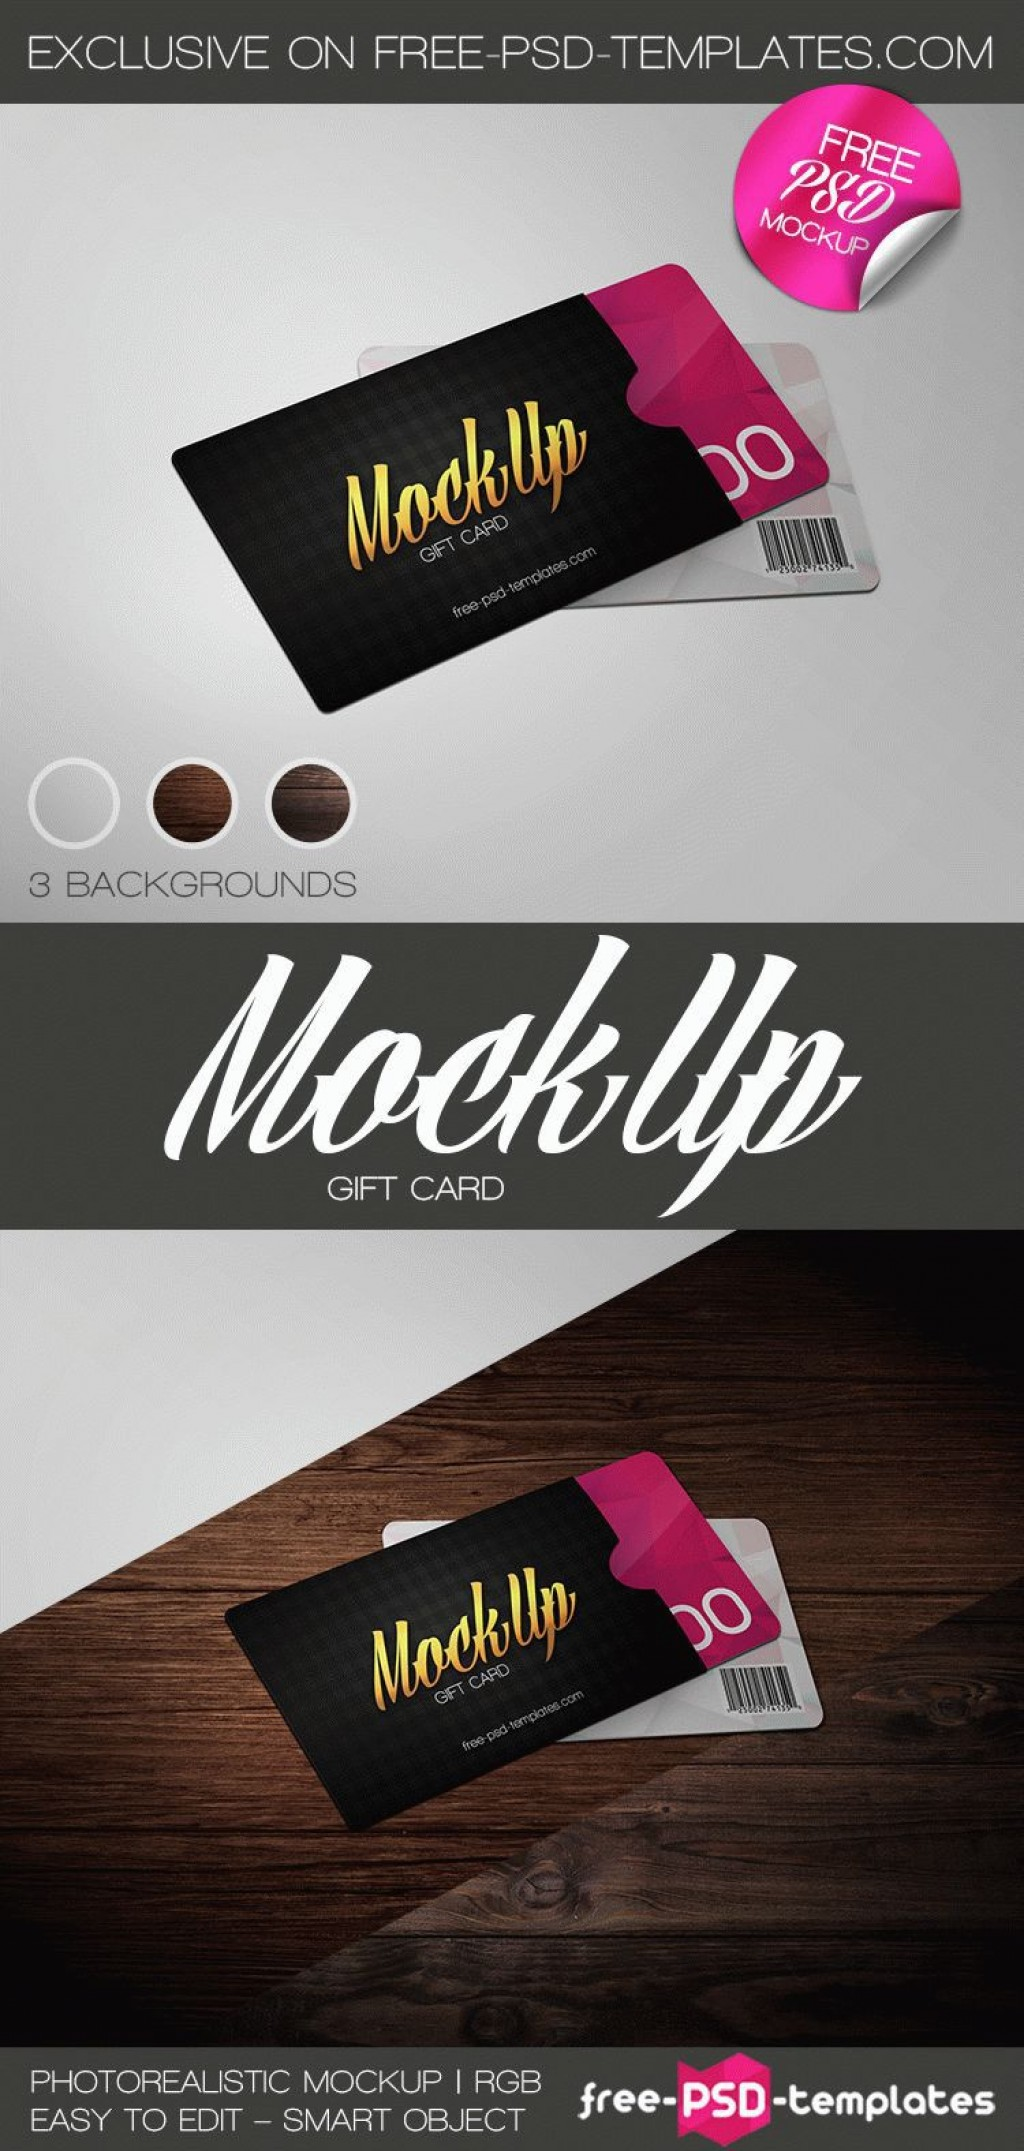 001 Simple Gift Card Template Psd Image  Christma Photoshop Free HolderLarge